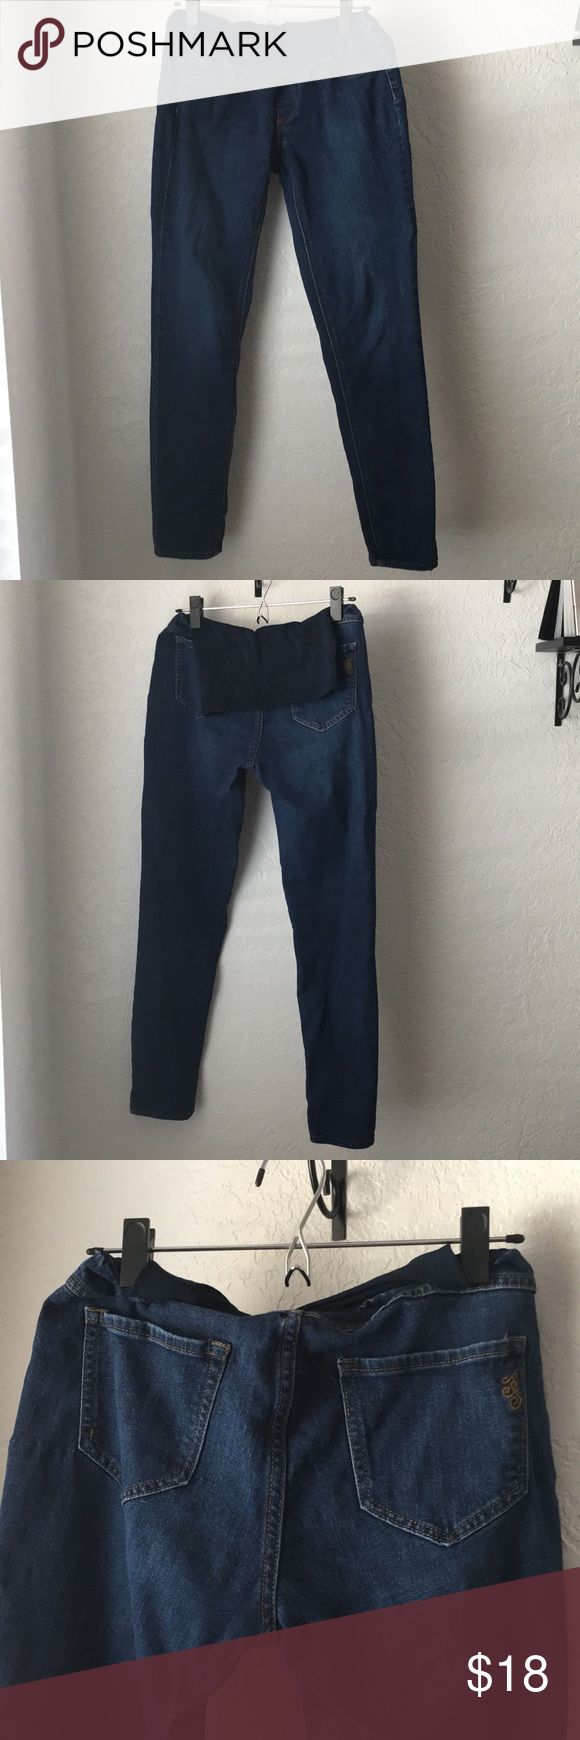 Jessica Simpson Maternity Jeans 👖 Jessica Simpson Maternity Jeans size Medium with full belly panel. great condition! Smoke free home. Jessica Simpson Jeans Straight Leg